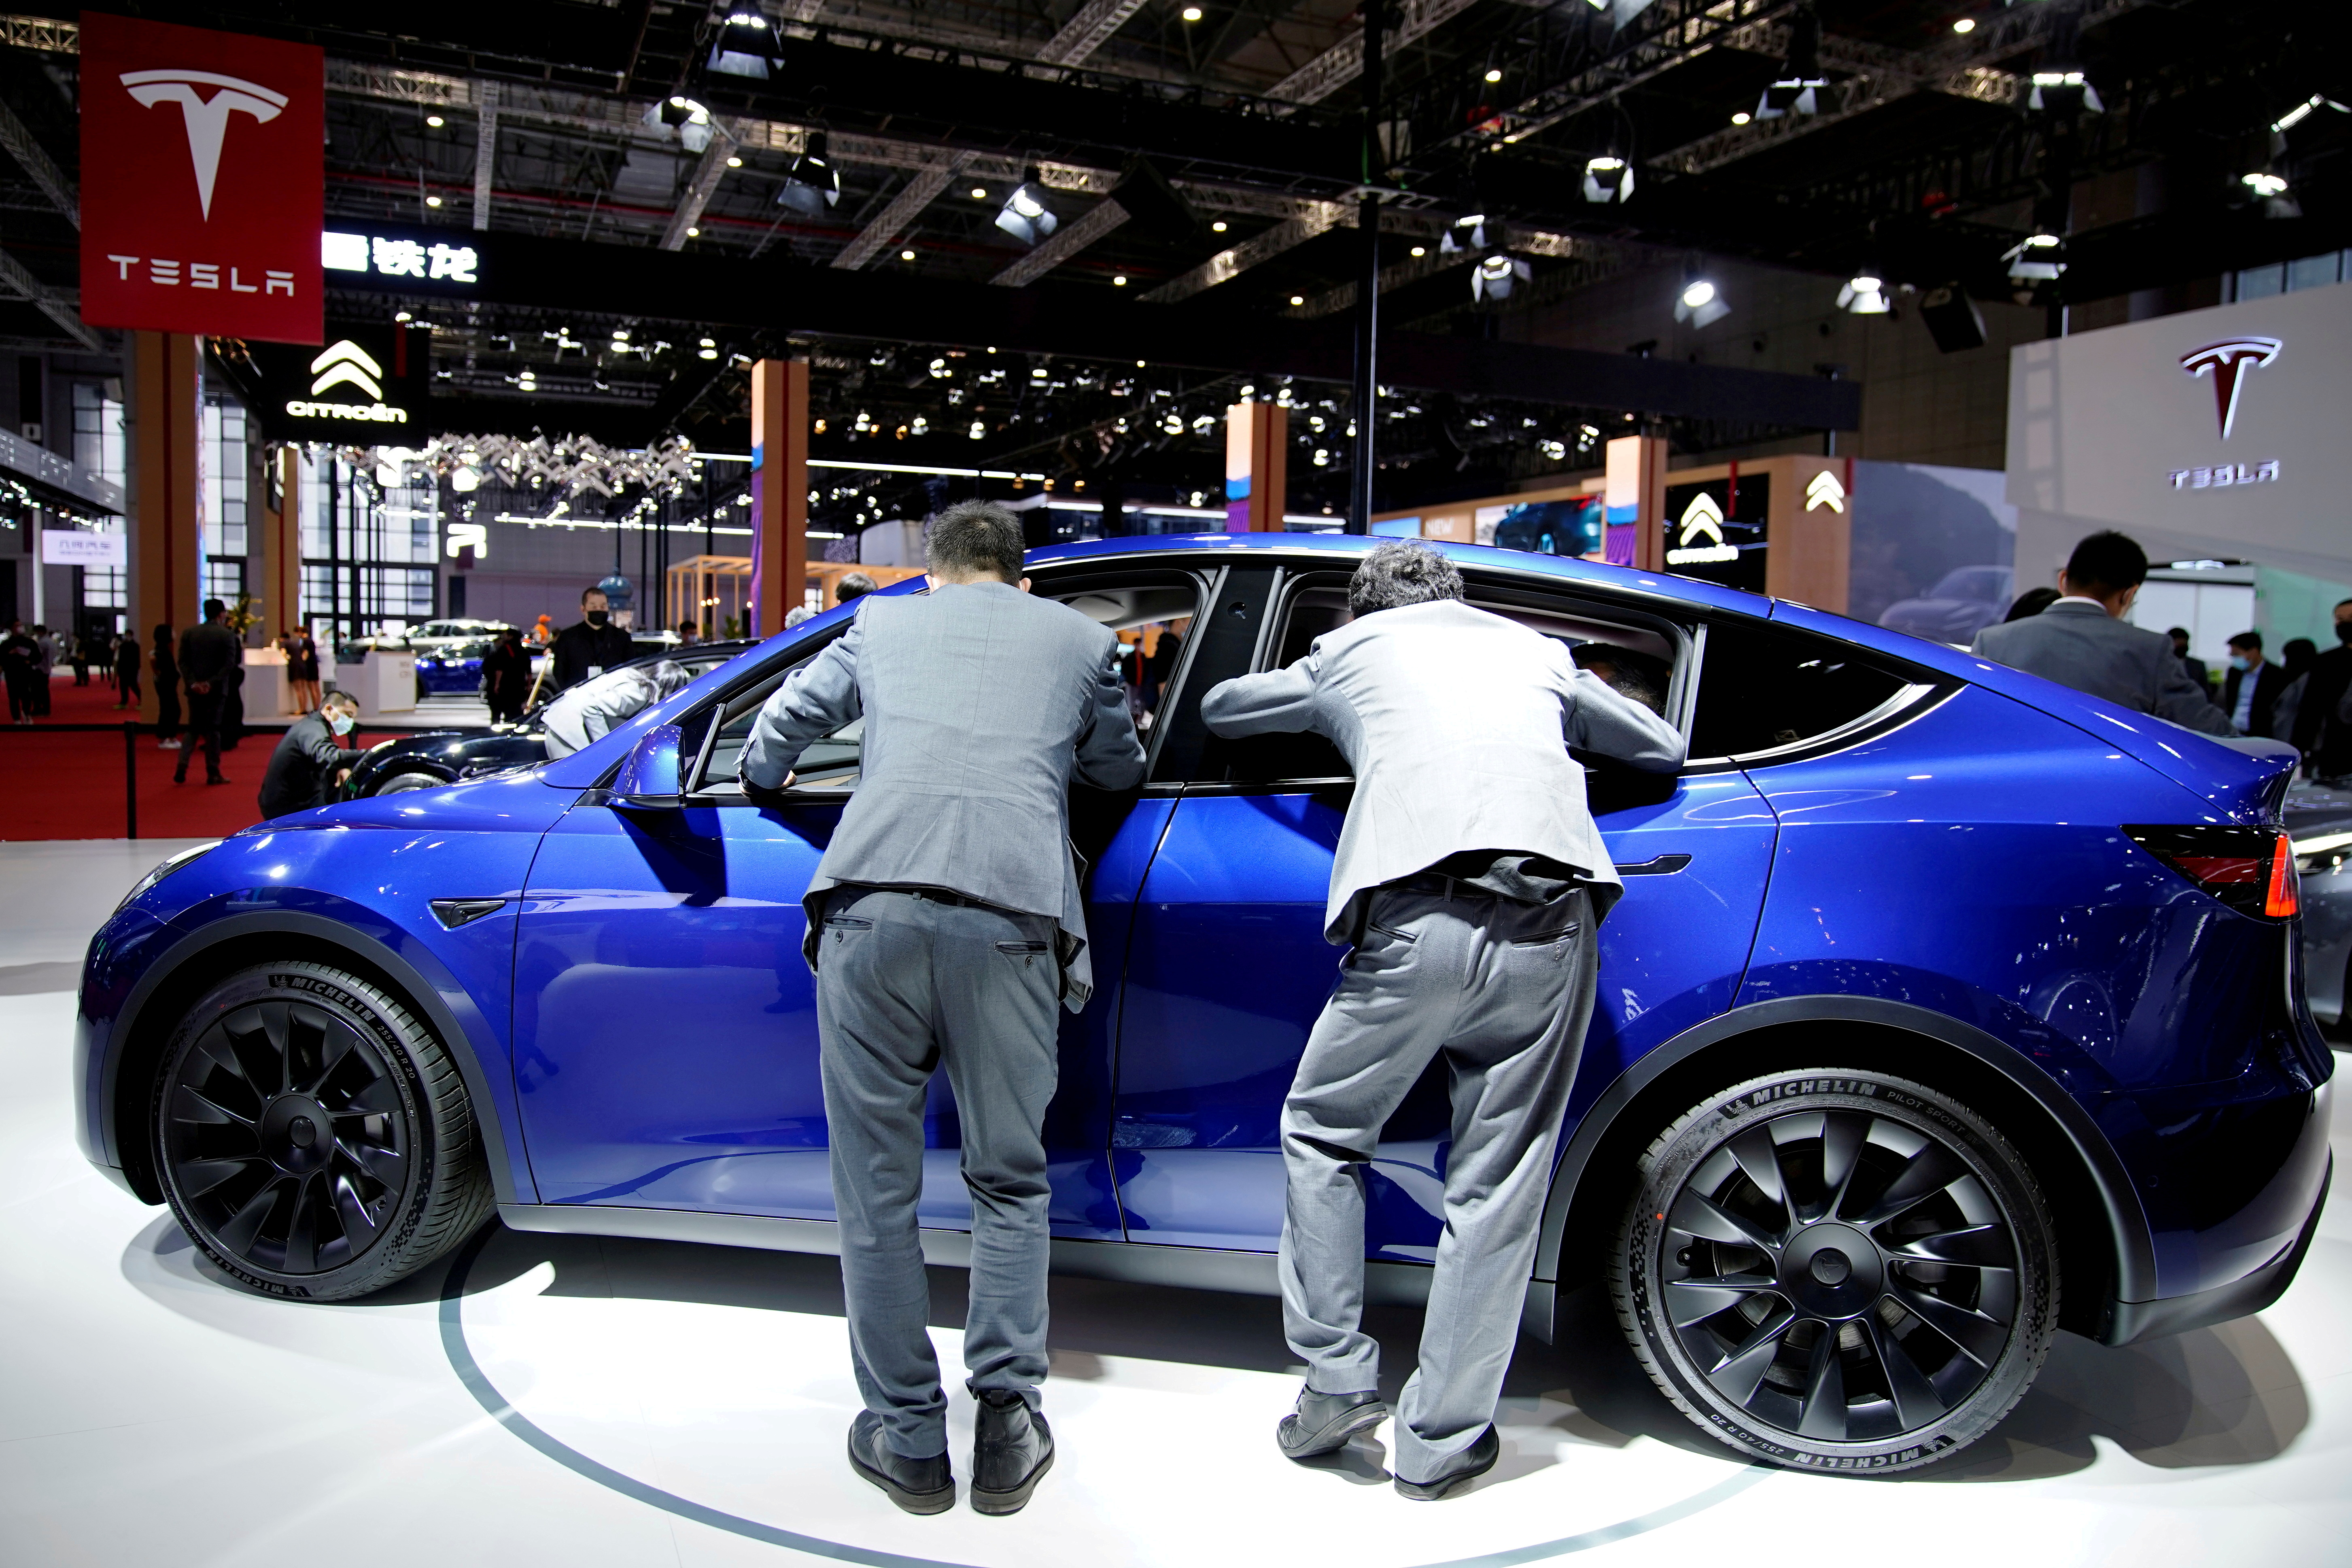 Visitors check an electric vehicle (EV) displayed at the Tesla booth during a media day for the Auto Shanghai show in Shanghai, China April 20, 2021. REUTERS/Aly Song/File Photo/File Photo